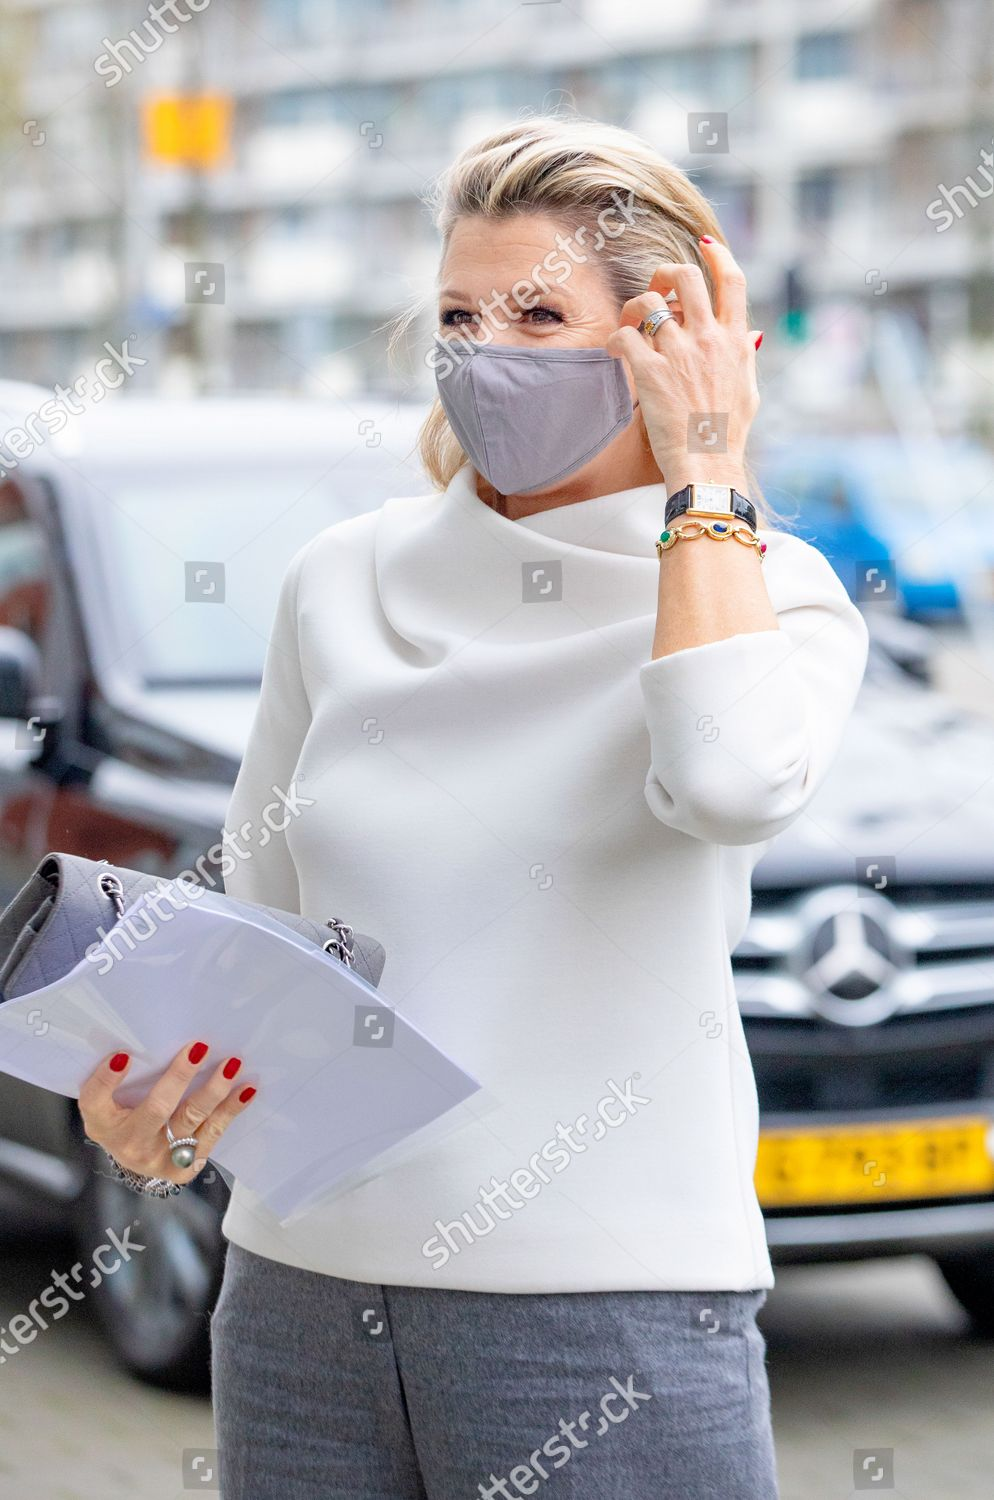 queen-maxima-attends-the-nlgroeit-entrepreneurship-town-hall-of-gouda-the-netherlands-shutterstock-editorial-11089479h.jpg